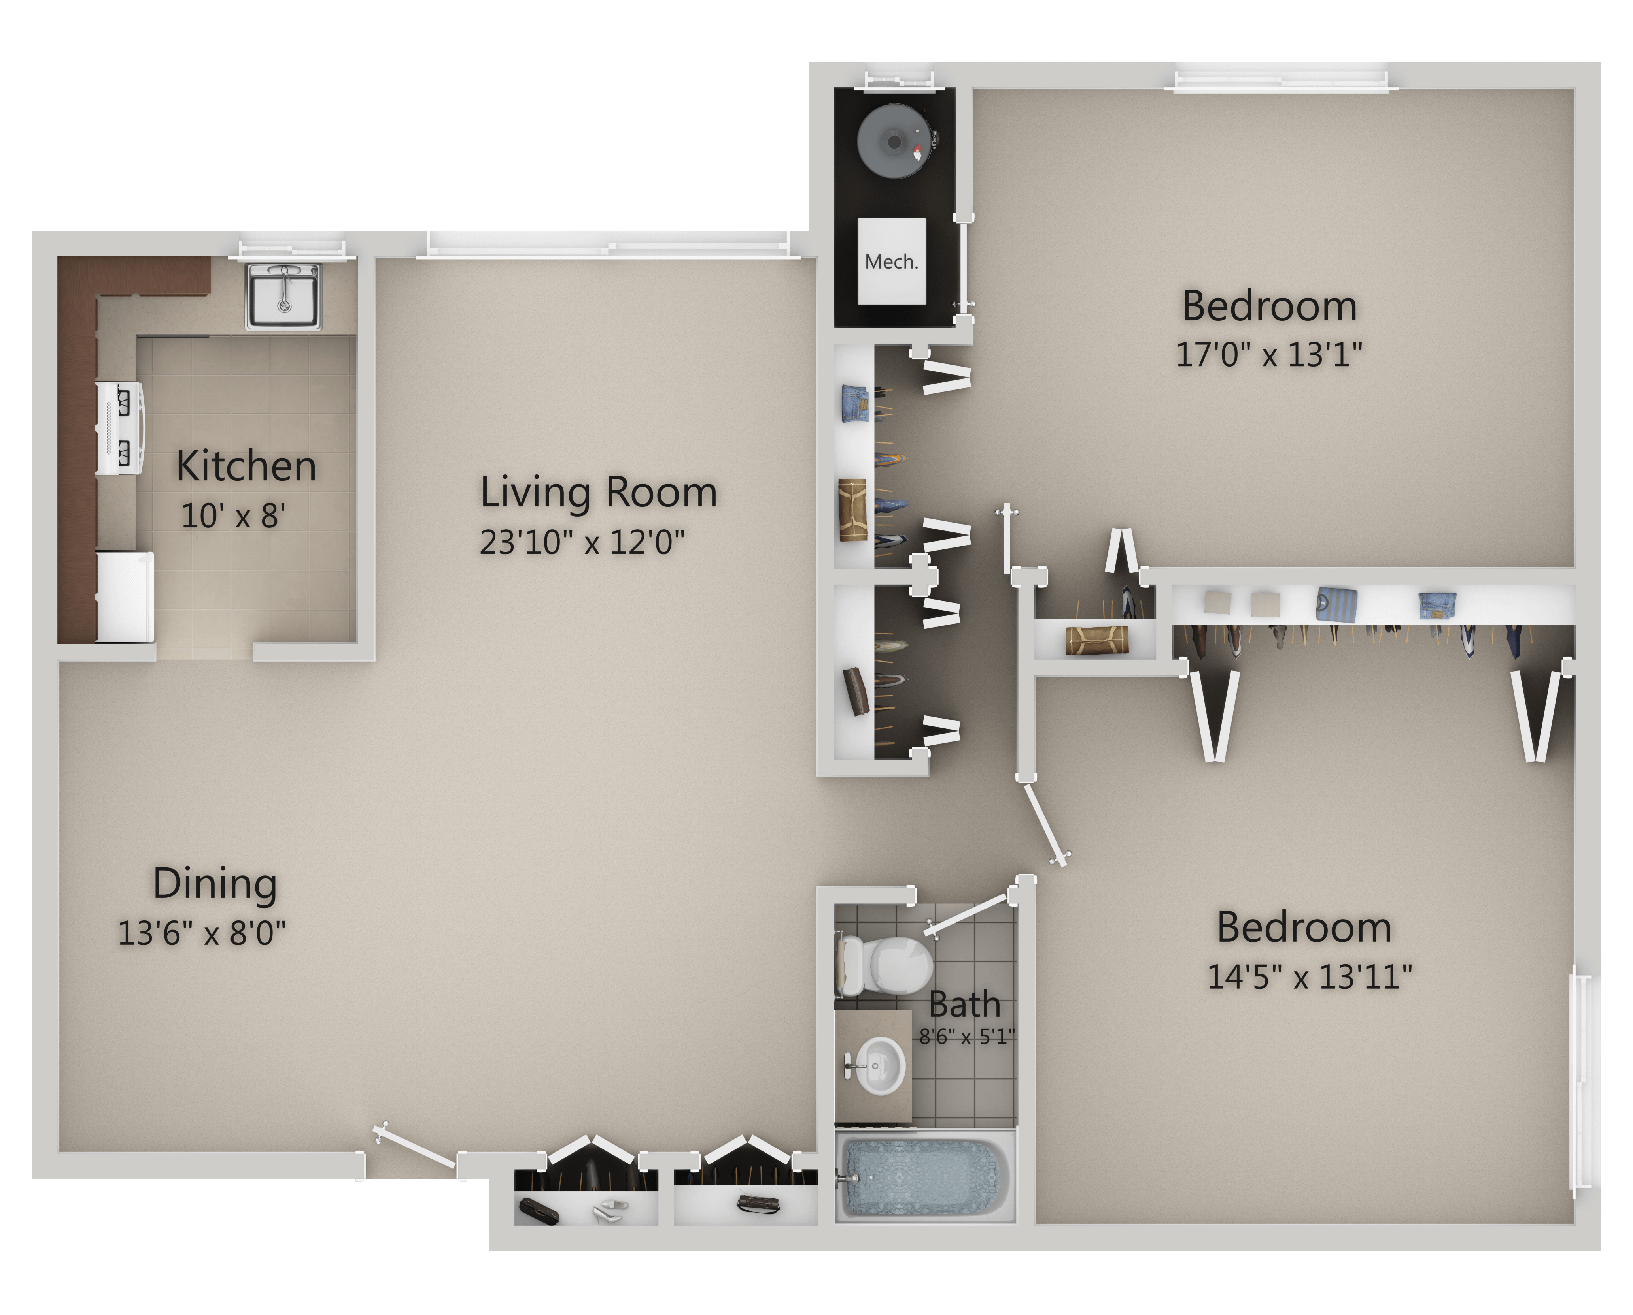 Lake Shore Park Apartments - 2 Bedroom, 1 Bath (Layout A)